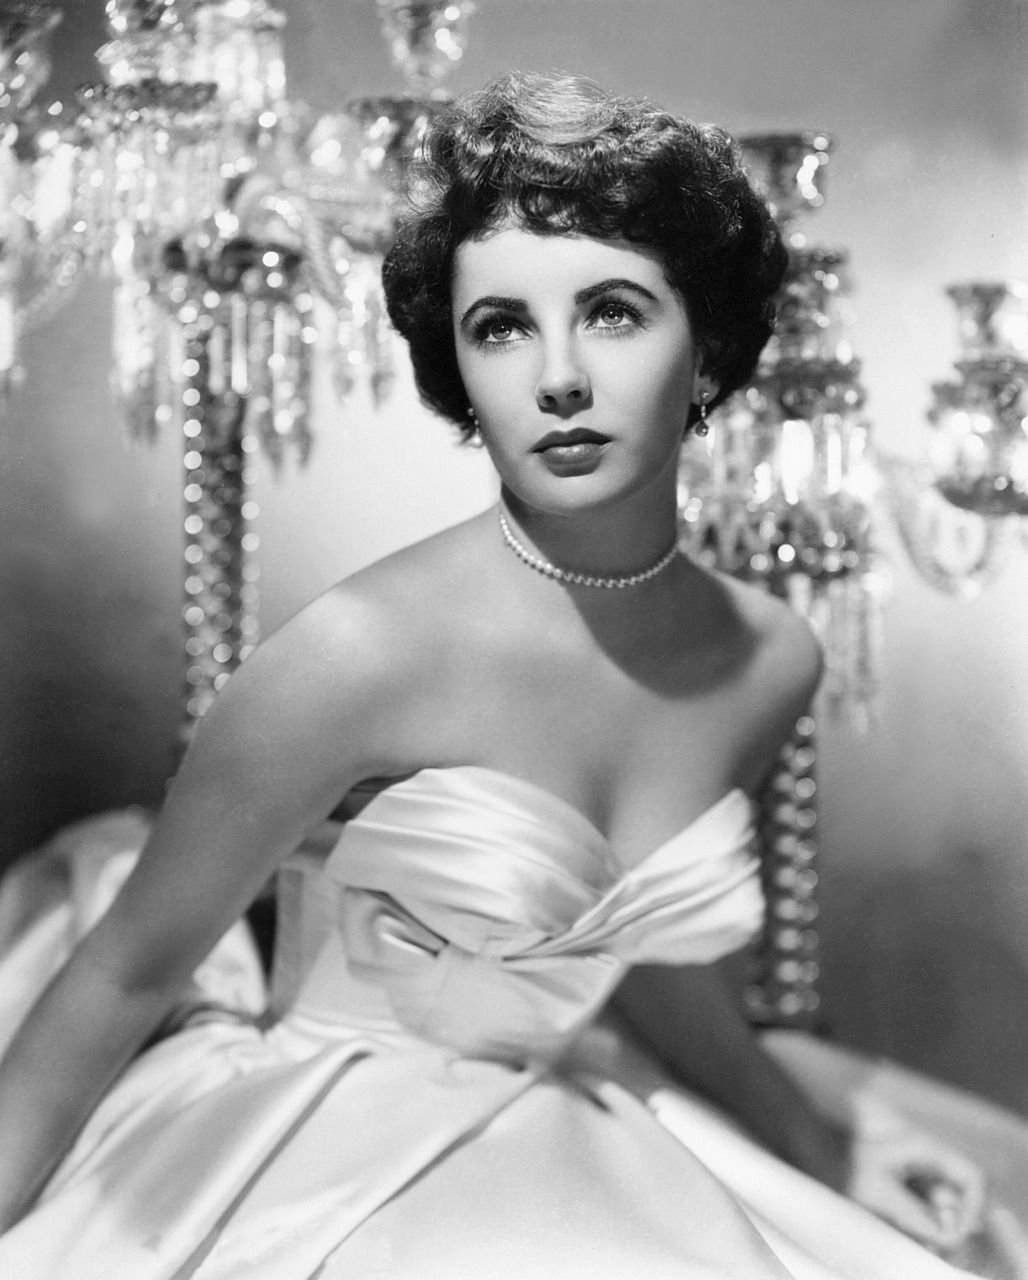 Elizabeth Taylor performed 100 operations on appearance correction 31.03.2010 58